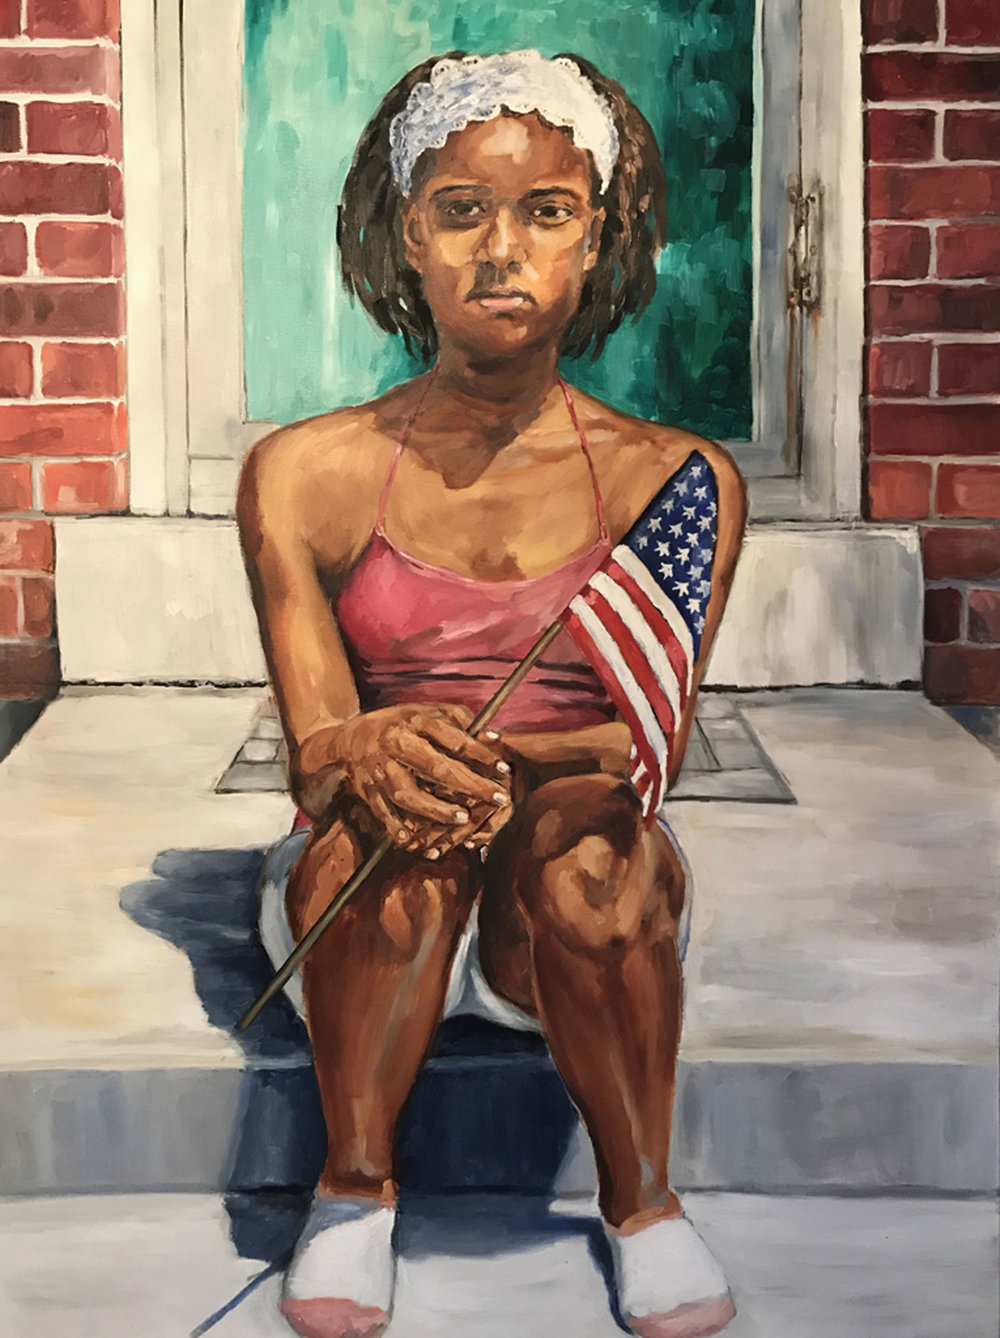 """Fourth of July"" Sandra Charles, Oil on canvas, 36x48in, 2016, $3750"